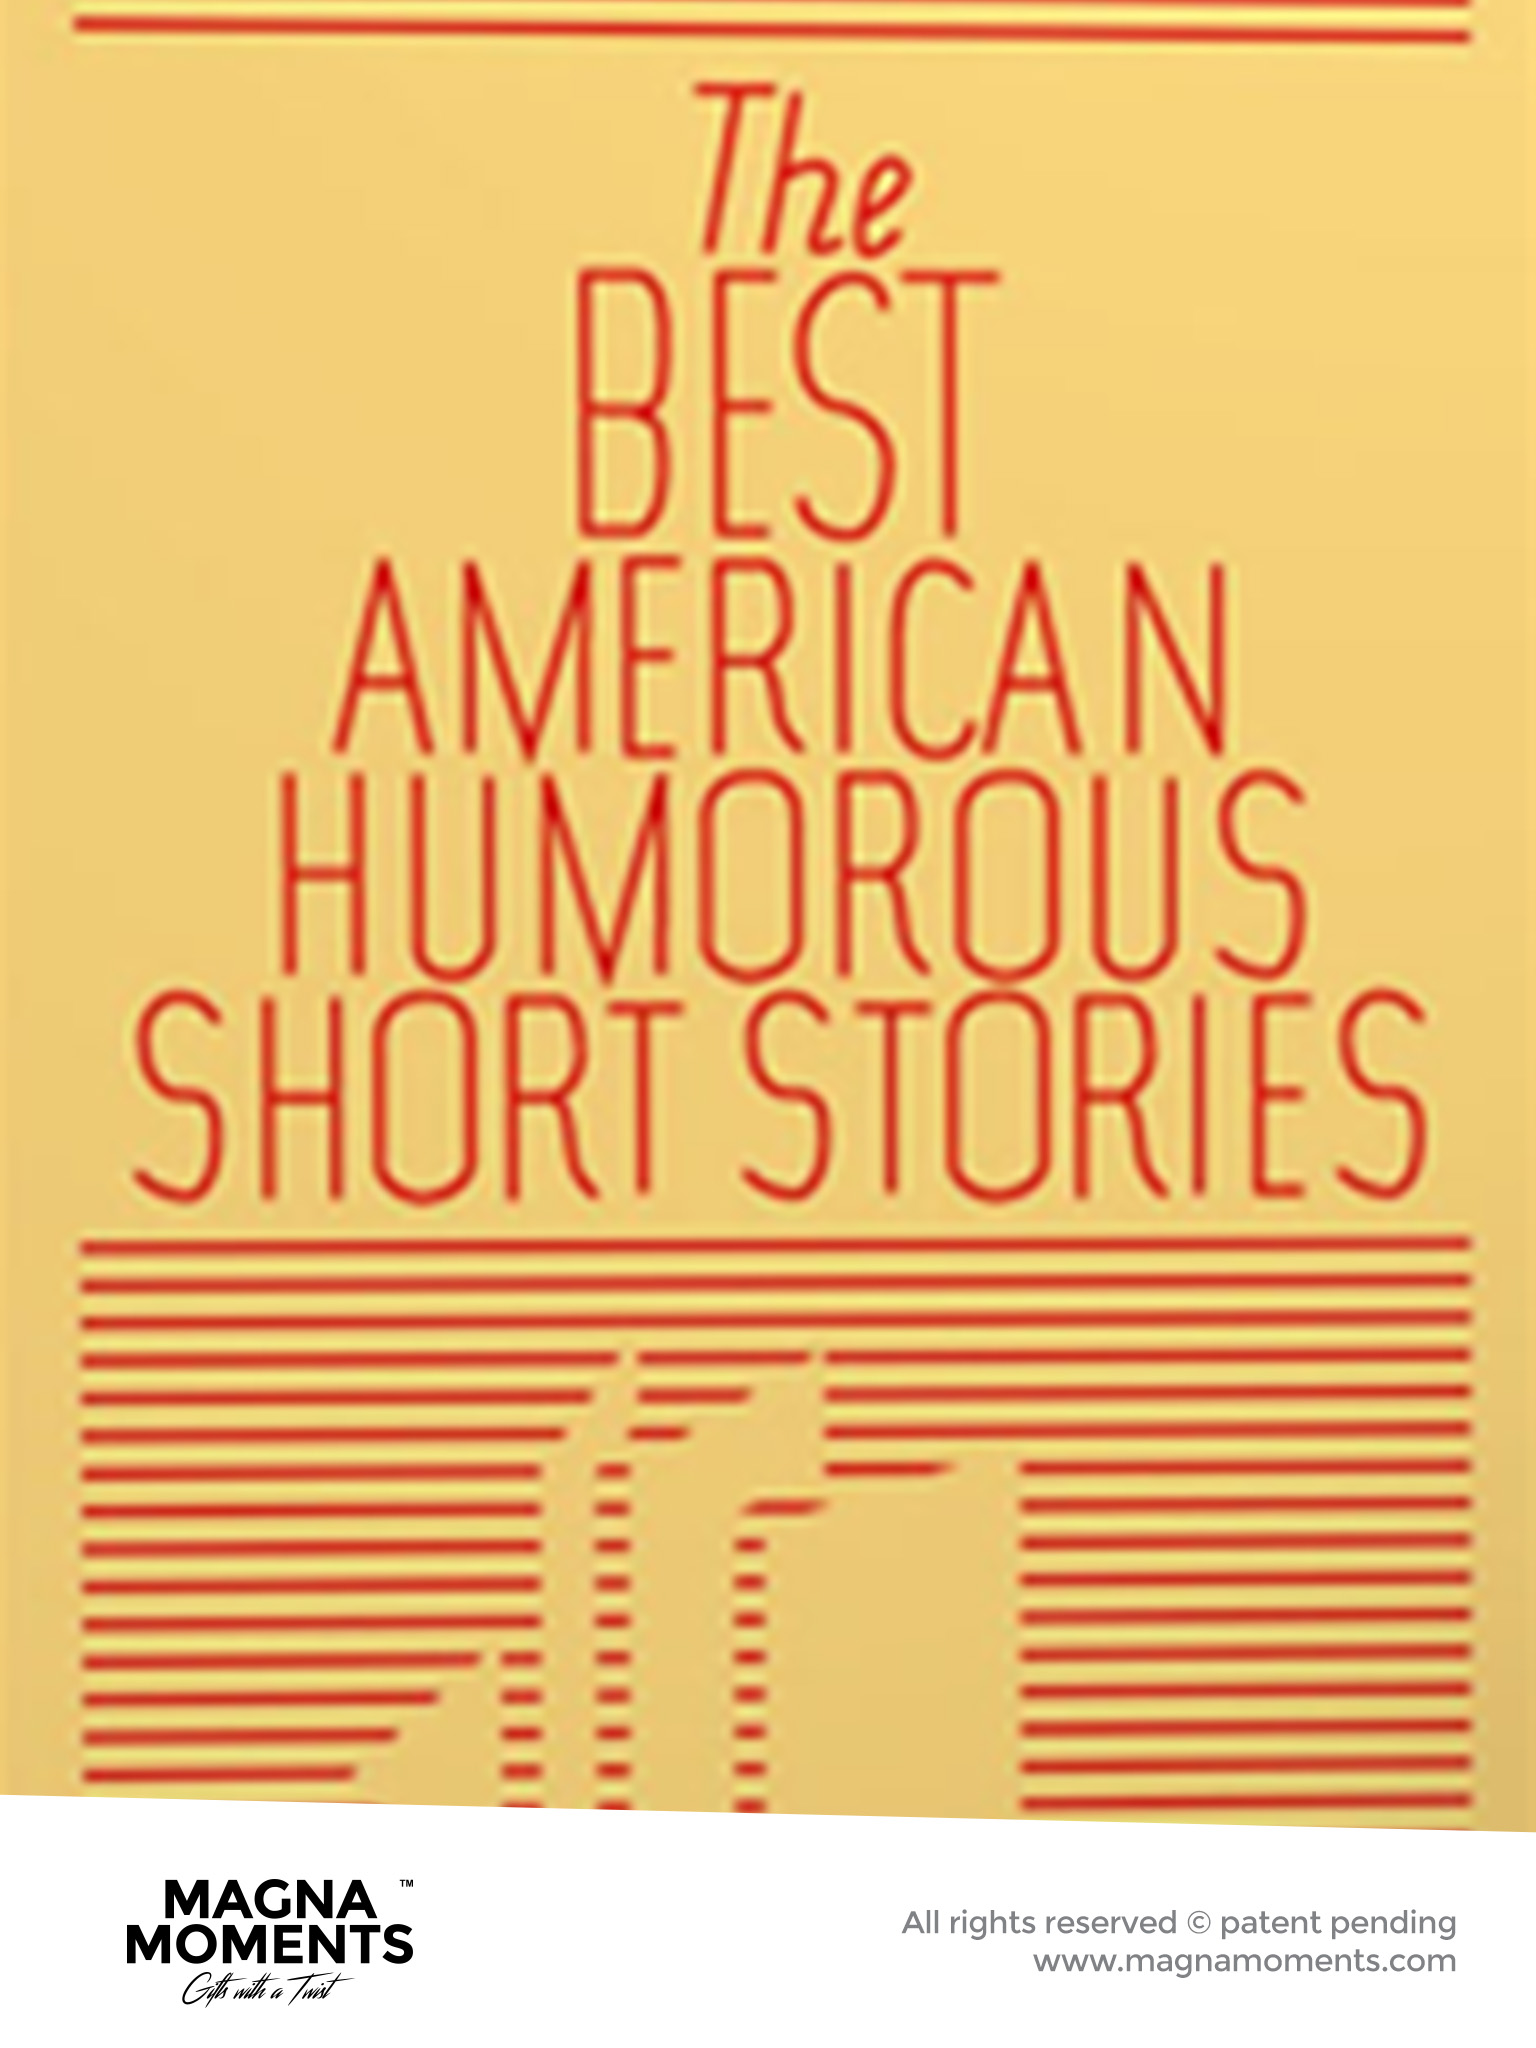 The Best American Humorous Short Stories by H. C. Bunner